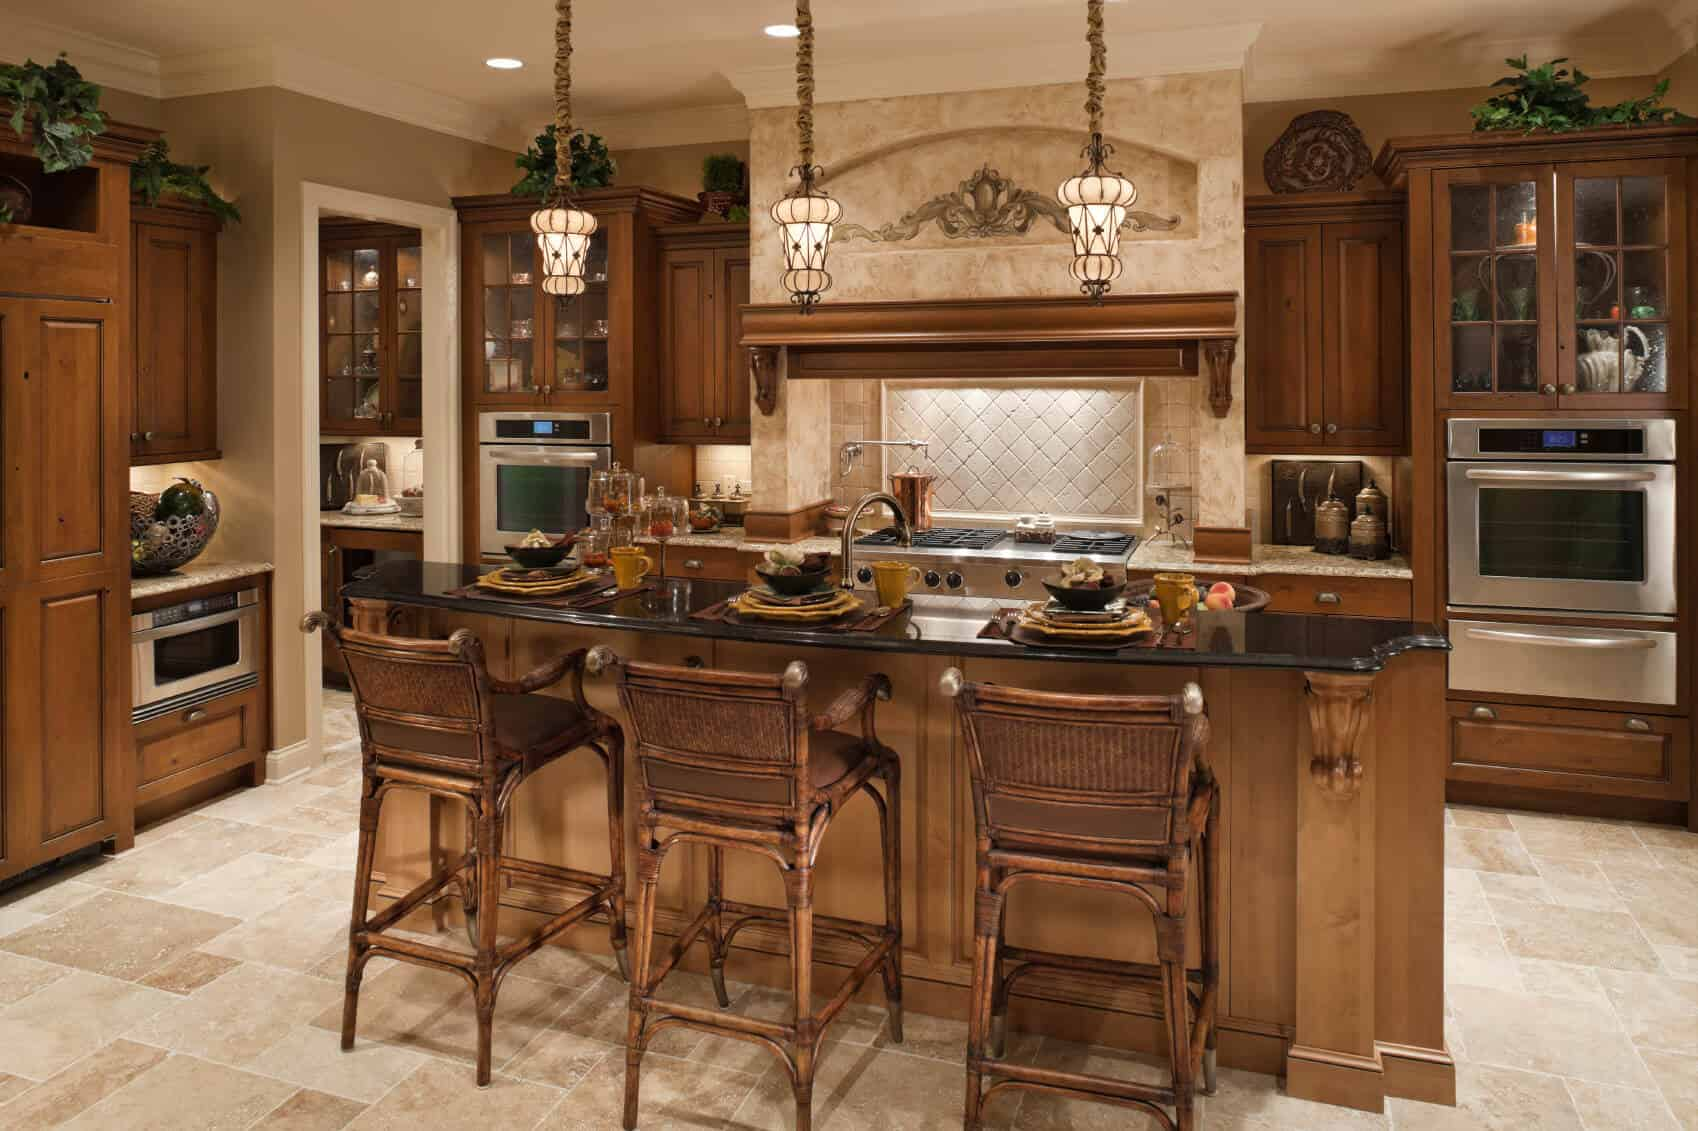 A kitchen featuring brown cabinetry, brown kitchen counters and a brown center island with a rustic set of seats on the breakfast bar.